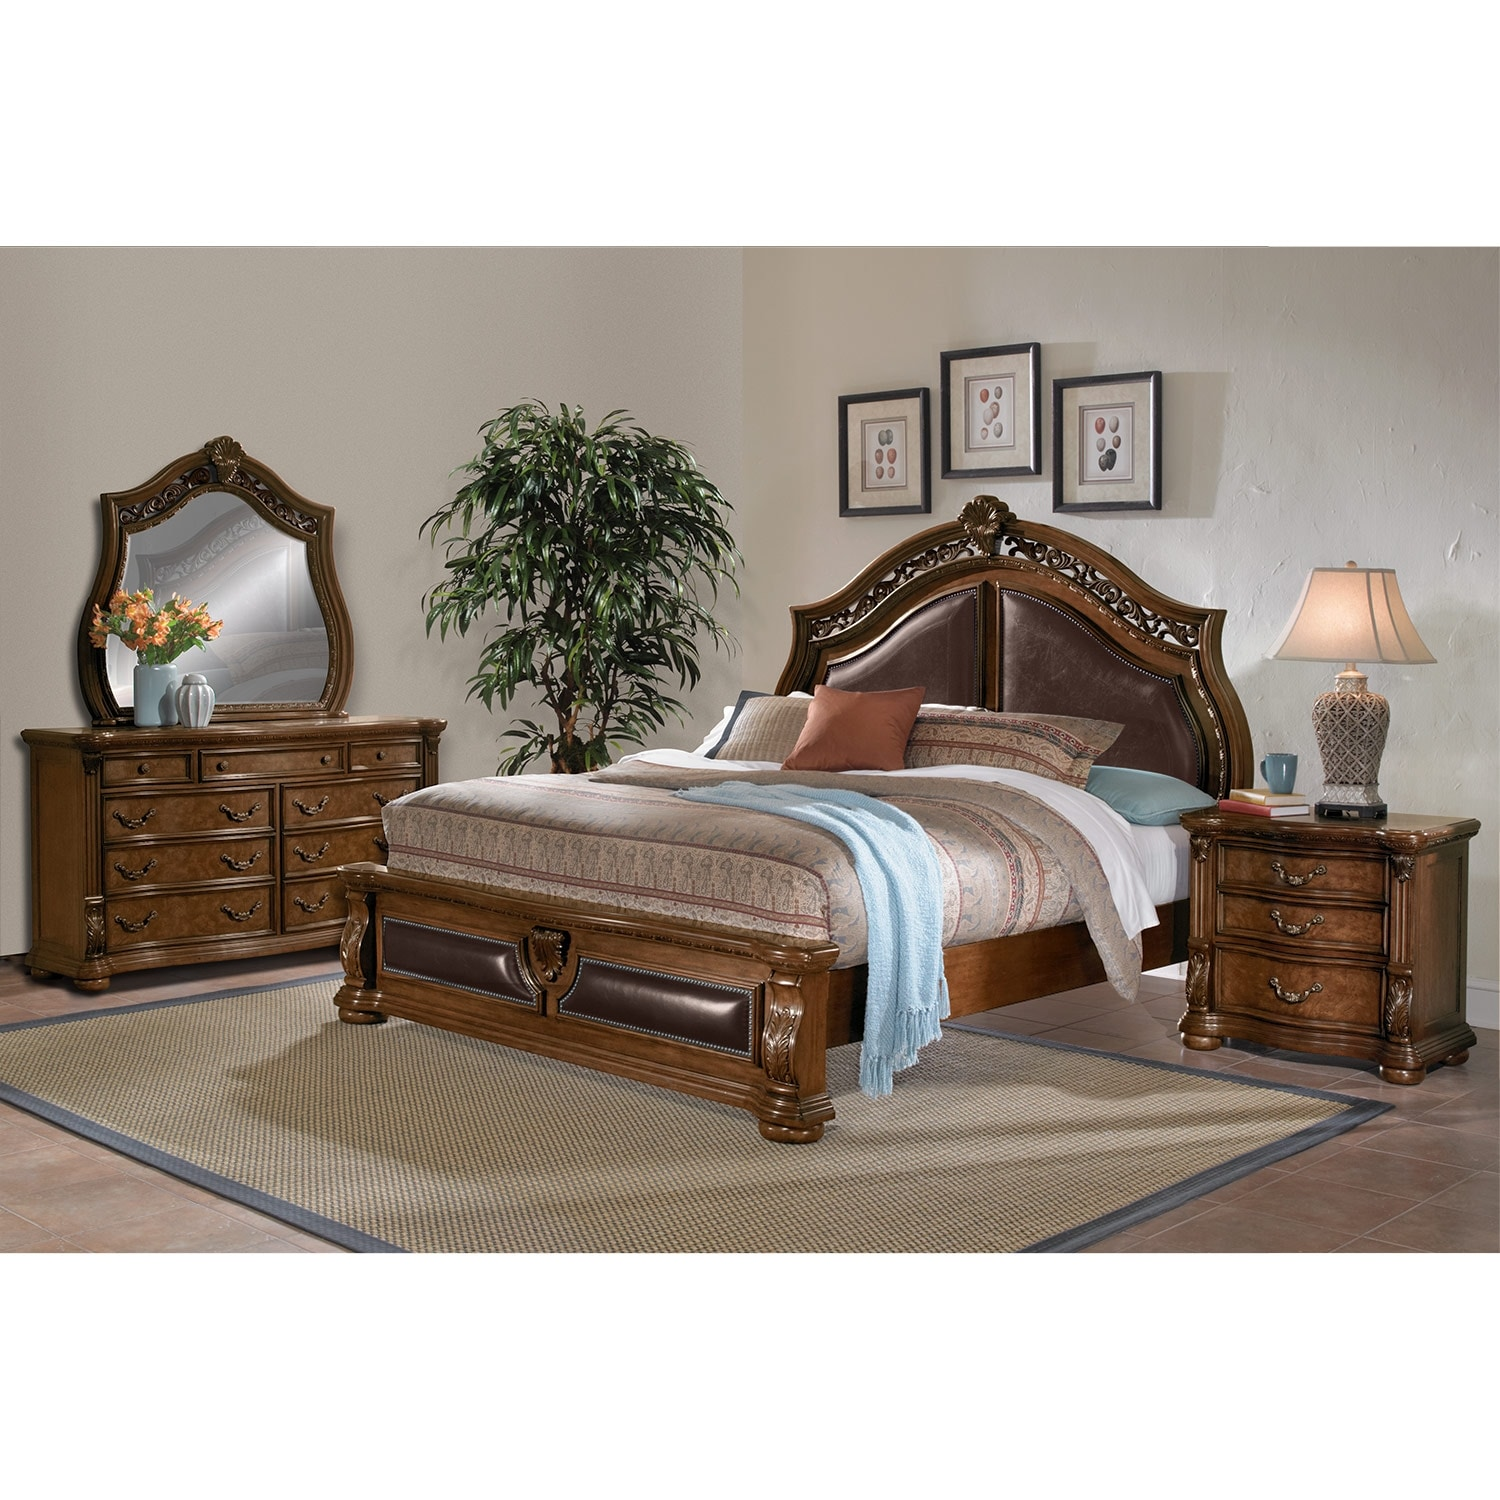 Superb Bedroom Furniture   Morocco 6 Piece King Upholstered Bedroom Set   Pecan